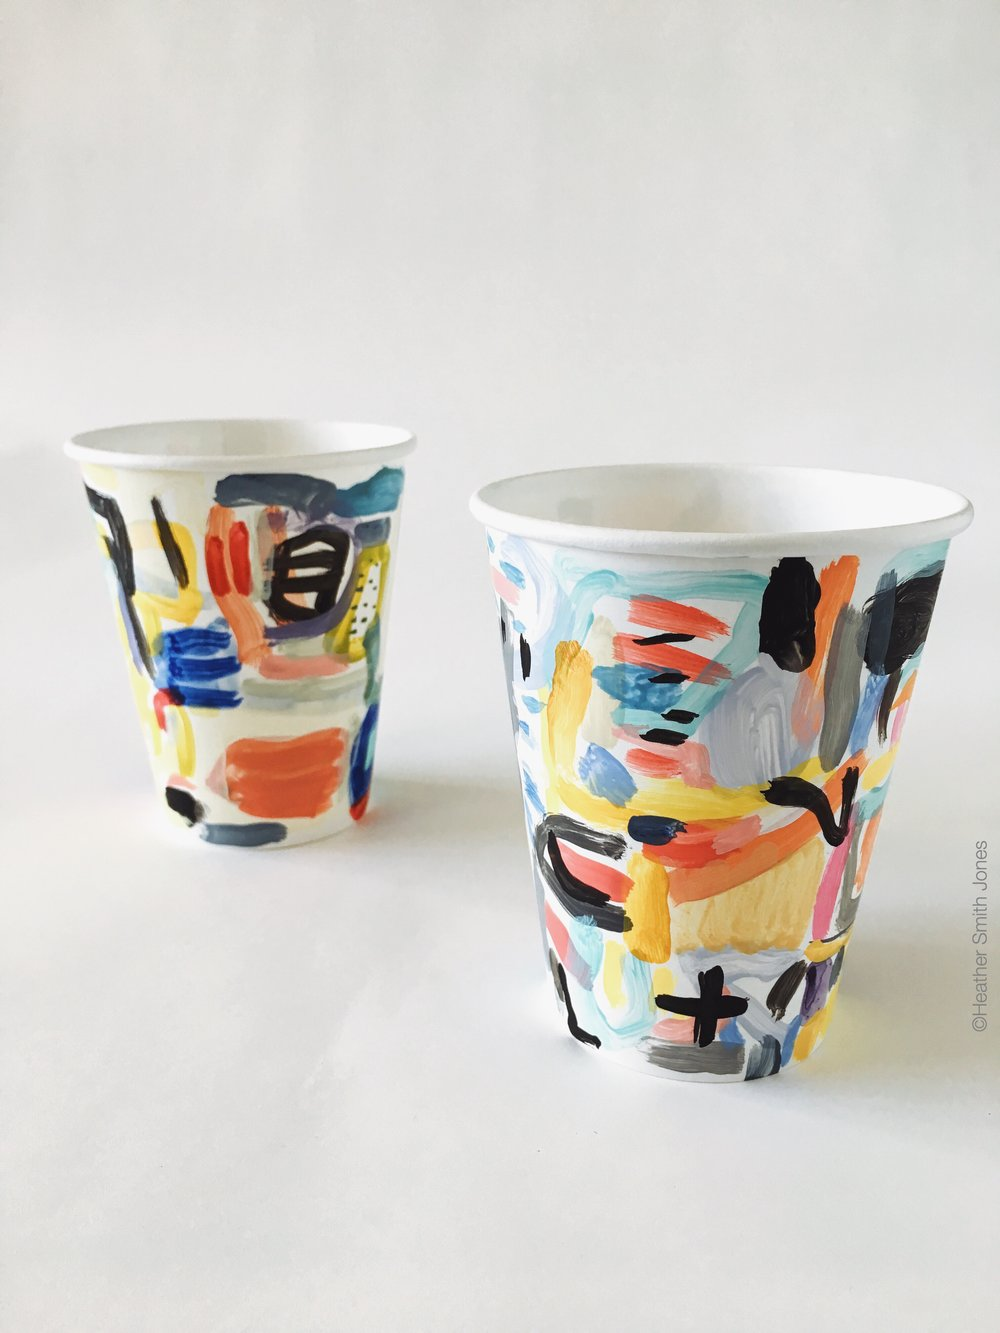 Two cups I painted for the #CautionMayBeHot exhibit on view at Long Weekend.